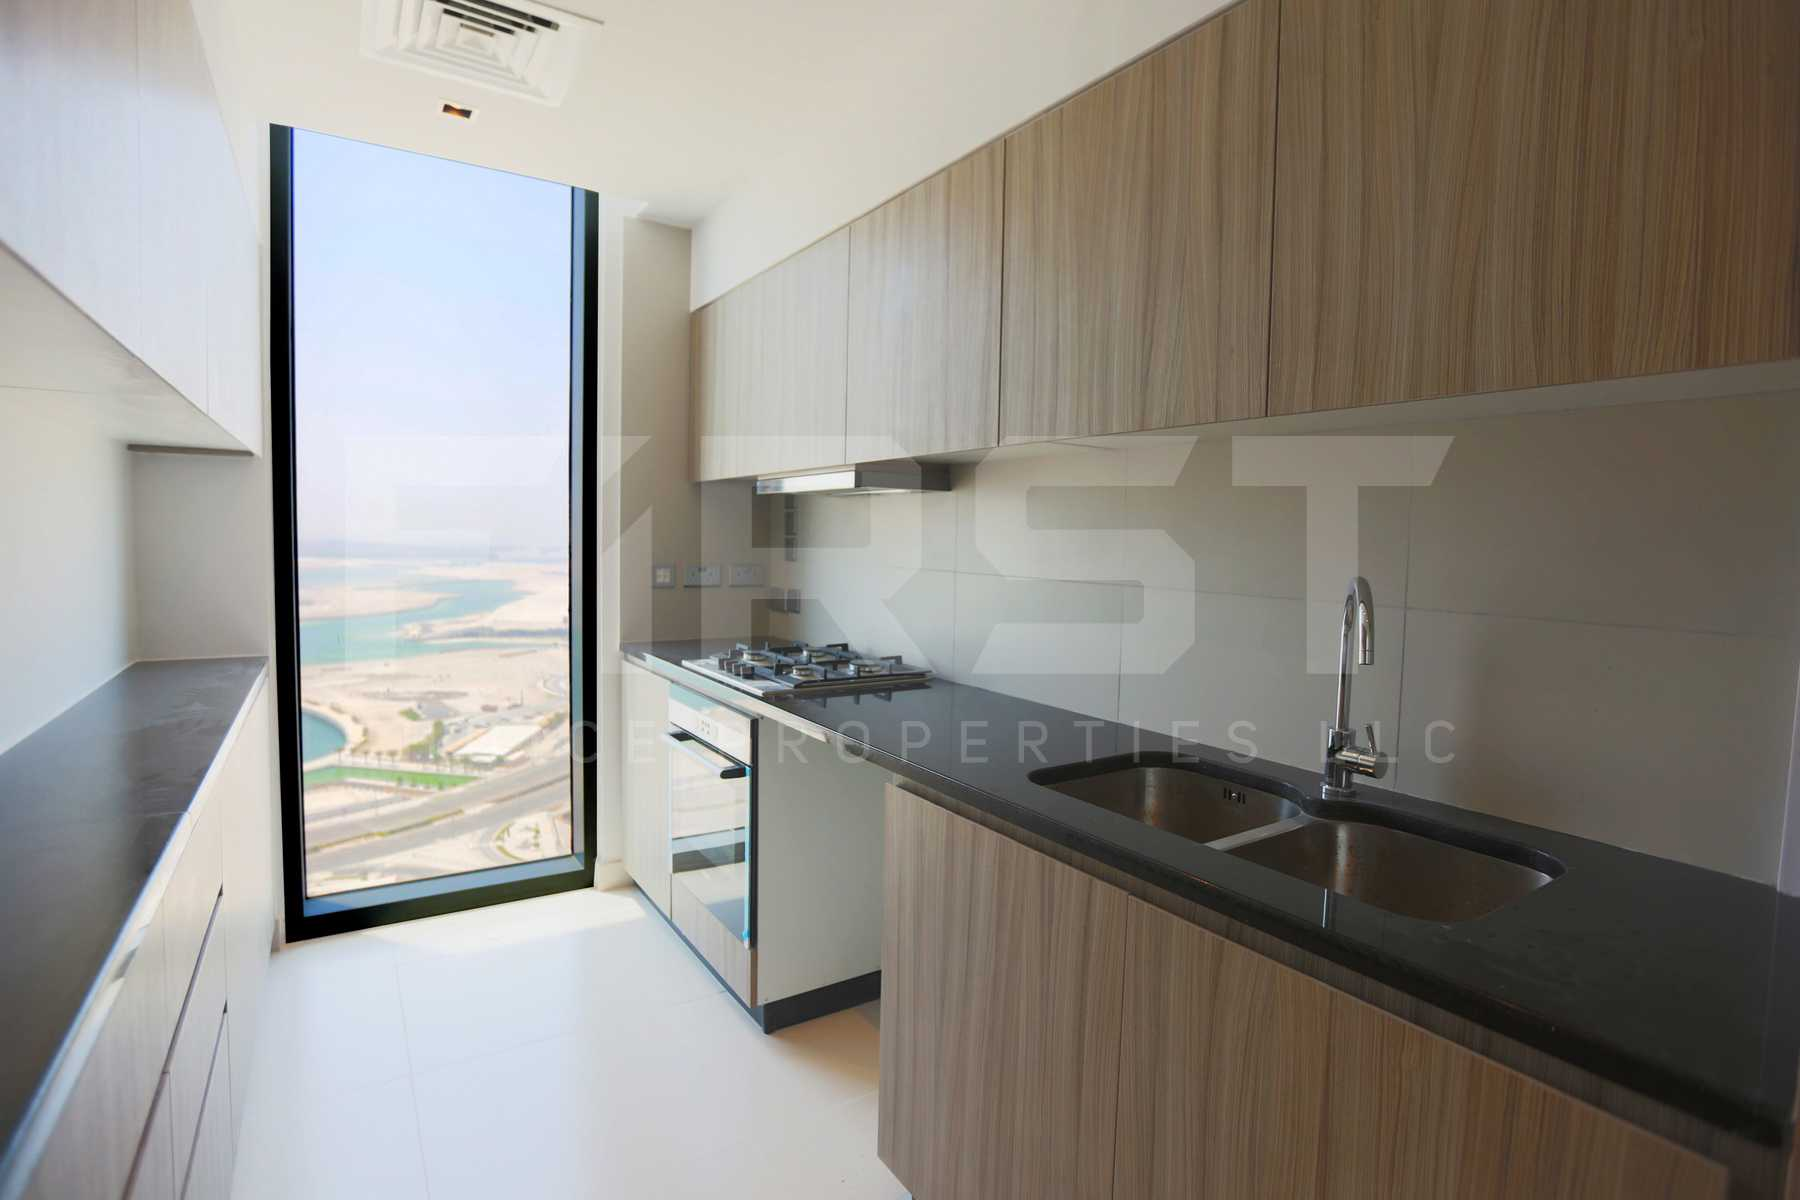 Internal Photo of 3 Bedroom Apartment in Meera Shams Al Reem Island Abu Dhabi UAE (5).jpg